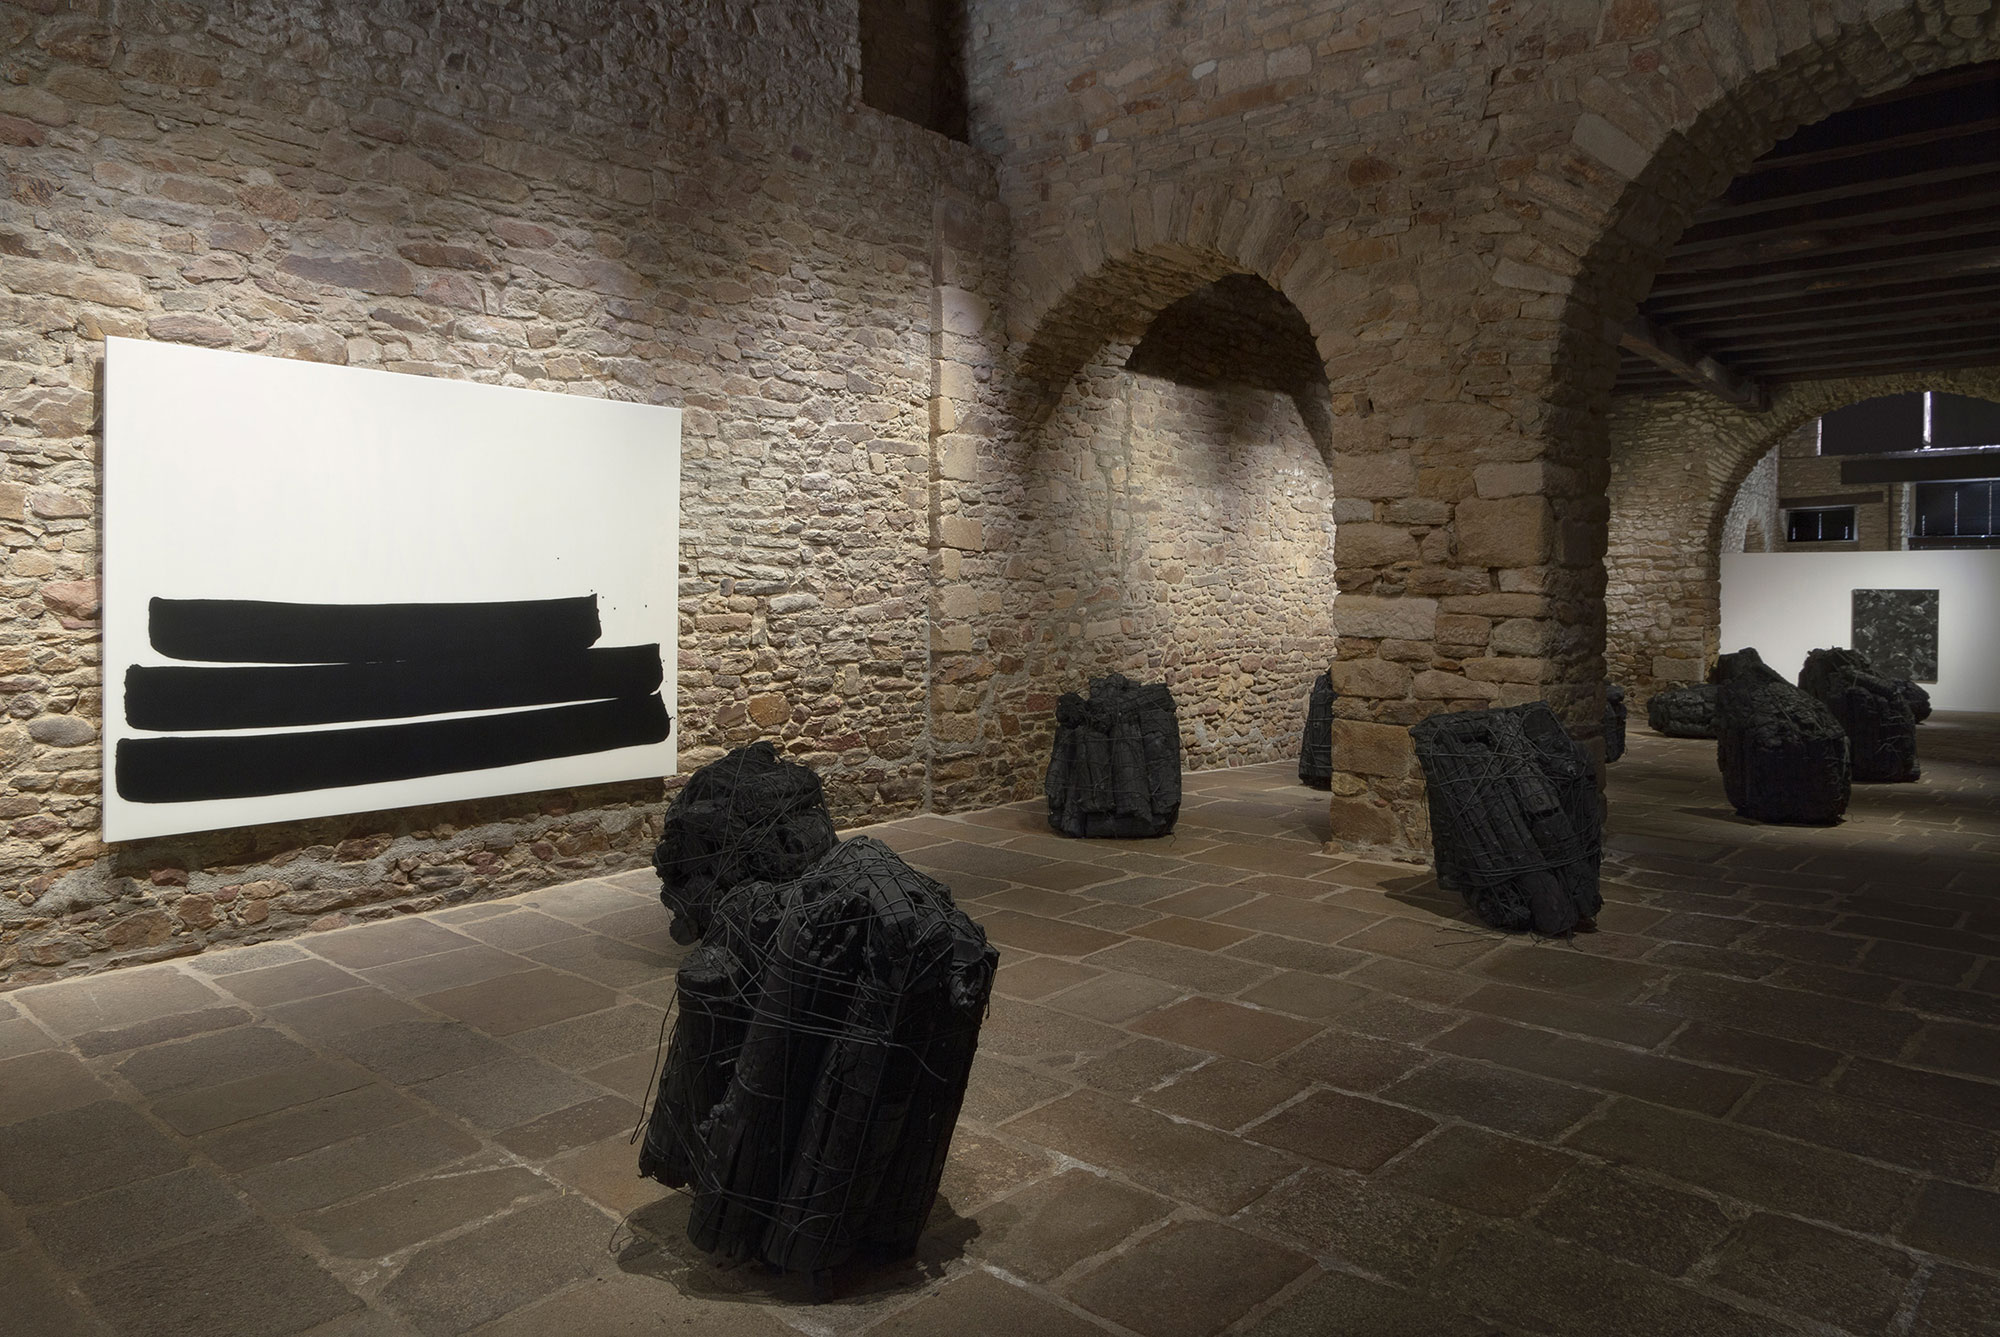 Issu du feu, Charcoal with rubber band, 100 x 90 x 90 cm (each-about), Installation view, Musee des Beaux-Arts de Vannes, 2016